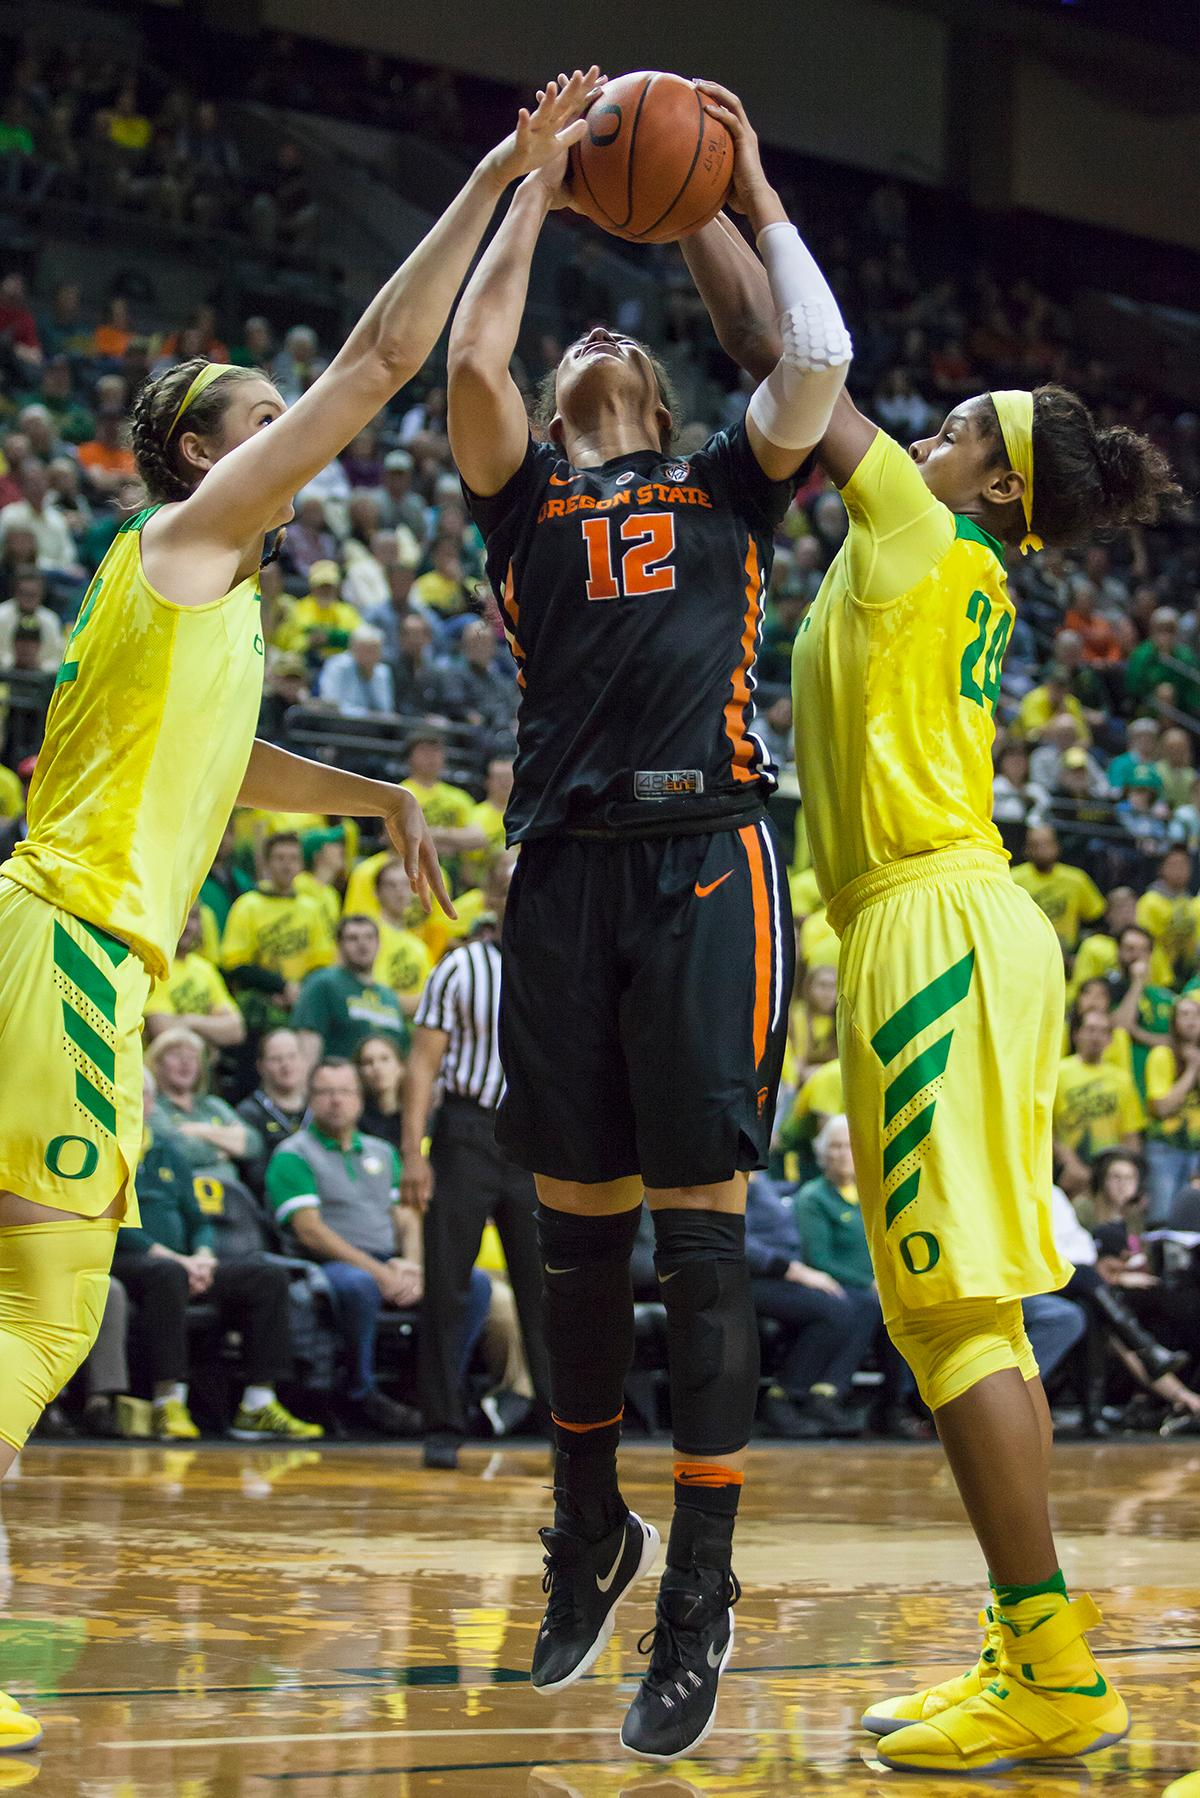 Oregon State forward Kolbie Orum (#12) attempts to make a layup. The Oregon Ducks lost 40 to 43 against the Oregon State Beavers after a tightly matched 4th quarter. Photo by Ben Lonergan, Oregon News Lab